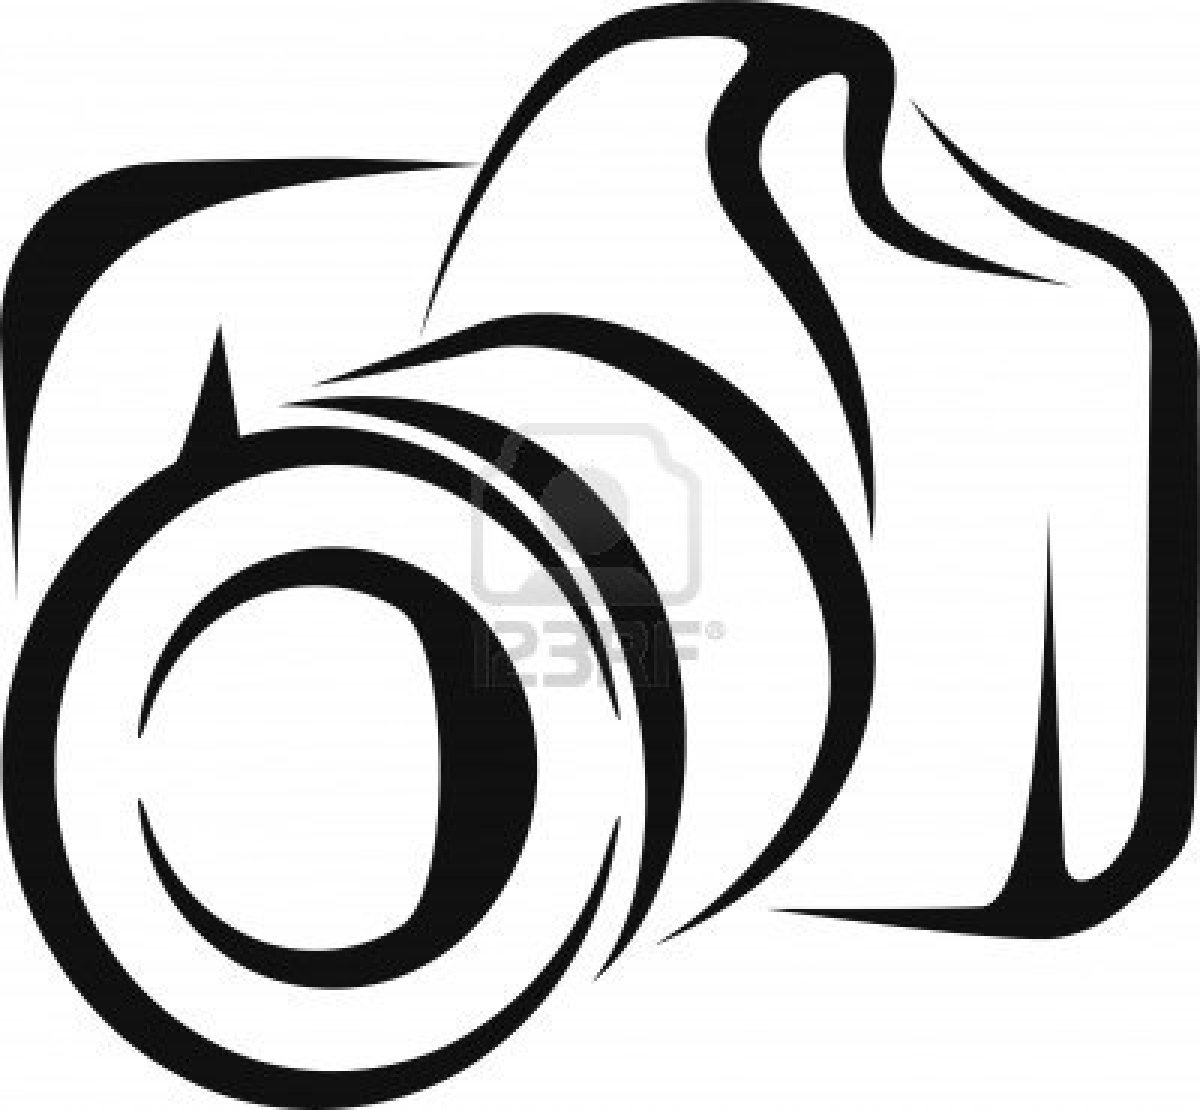 Camera logo clipart images picture free download Camera Logo Png | Free download best Camera Logo Png on ClipArtMag.com picture free download